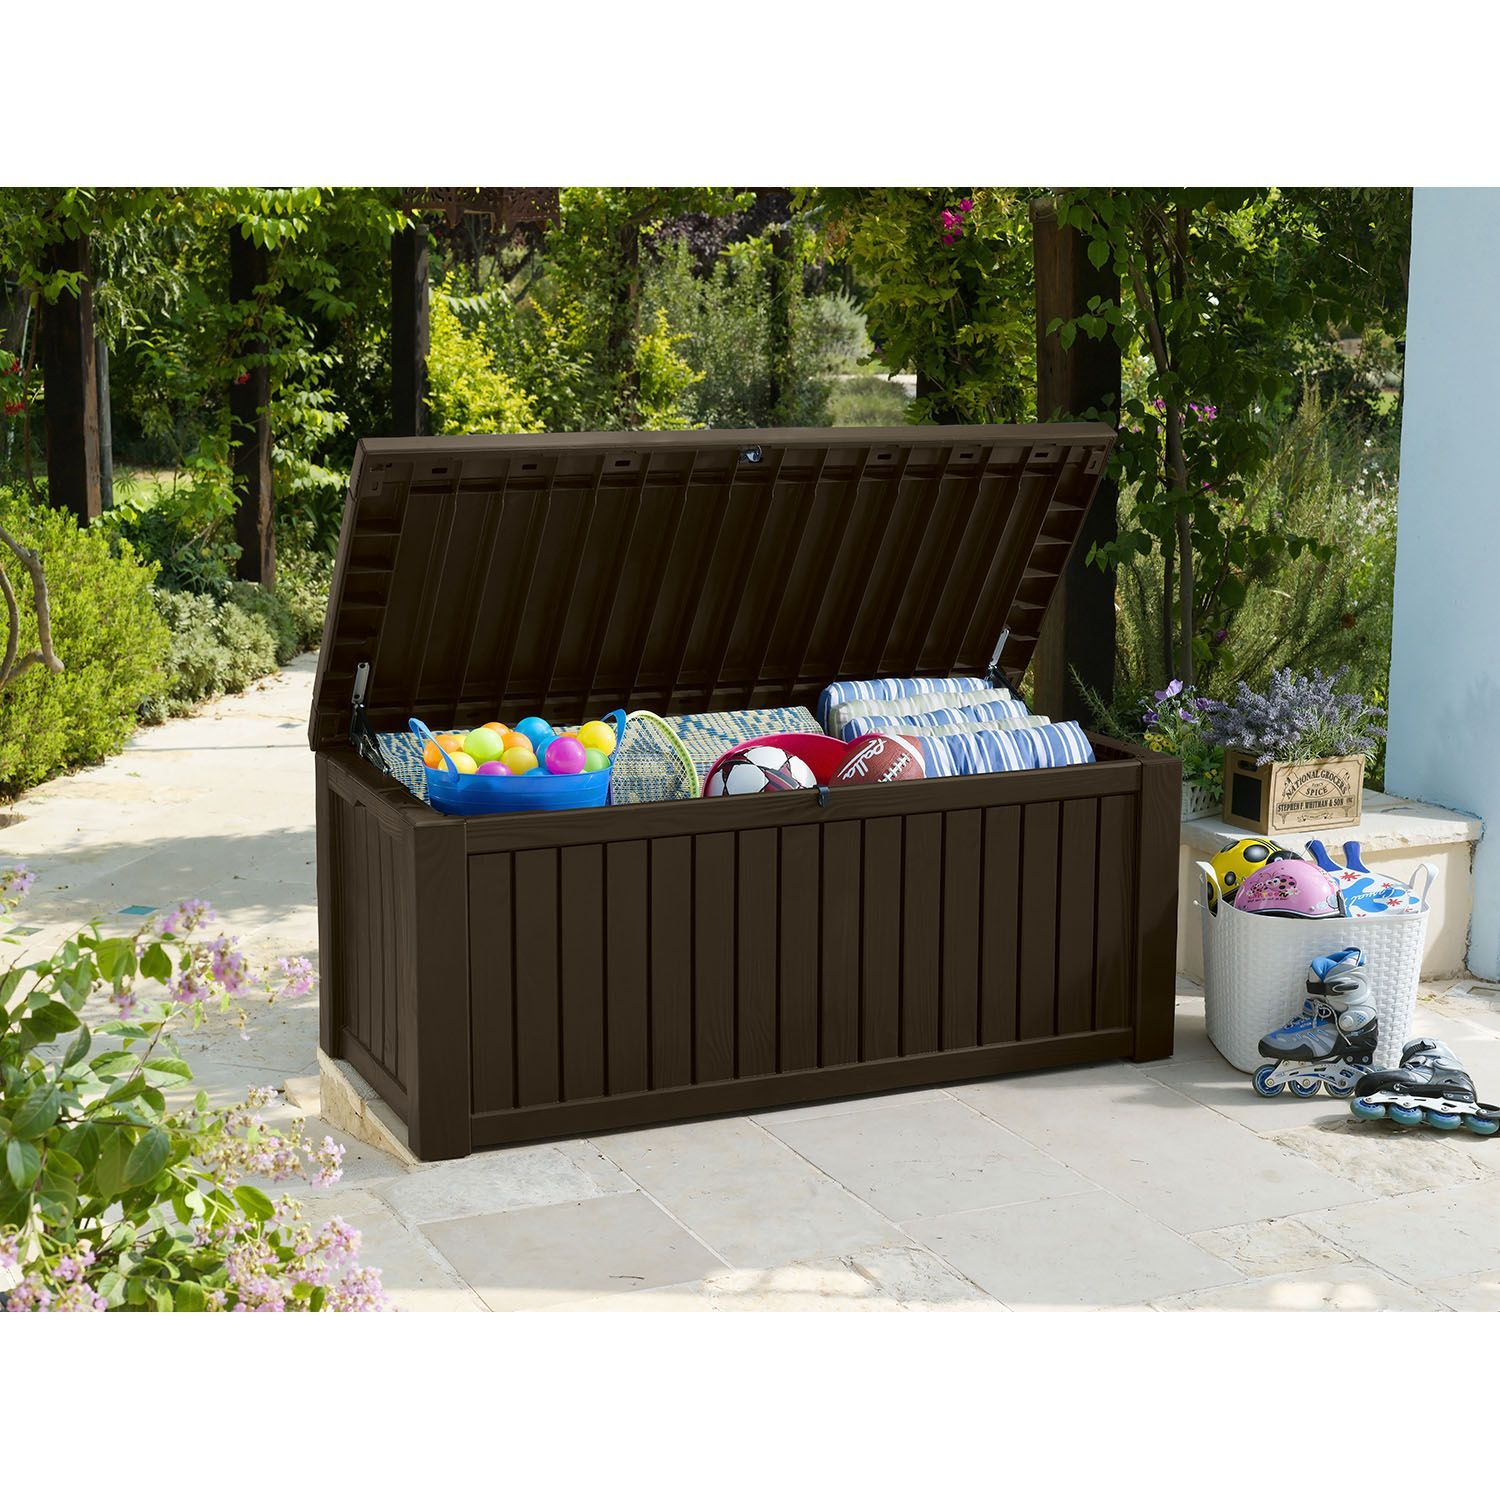 Keter Rockwood Outdoor Plastic Deck Storage Container Box 150 Gal